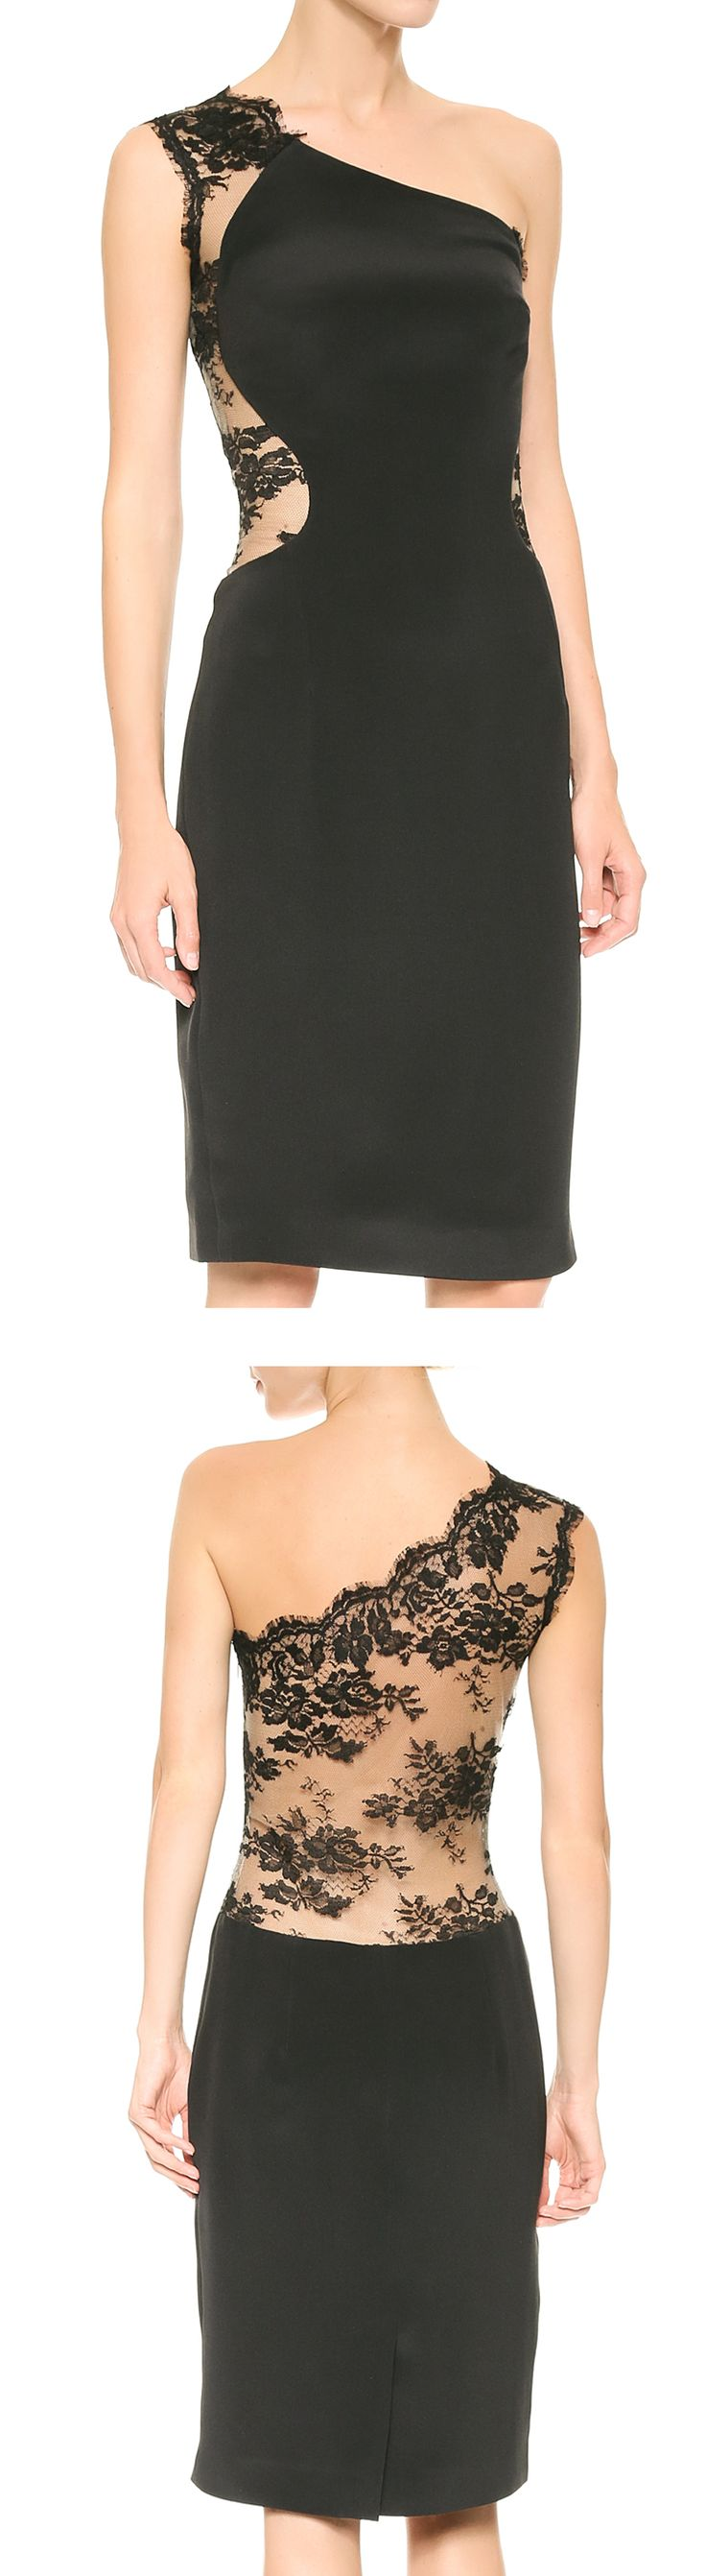 Lace dress styles for funeral   best clothes images on Pinterest  Convertible dress Infinity